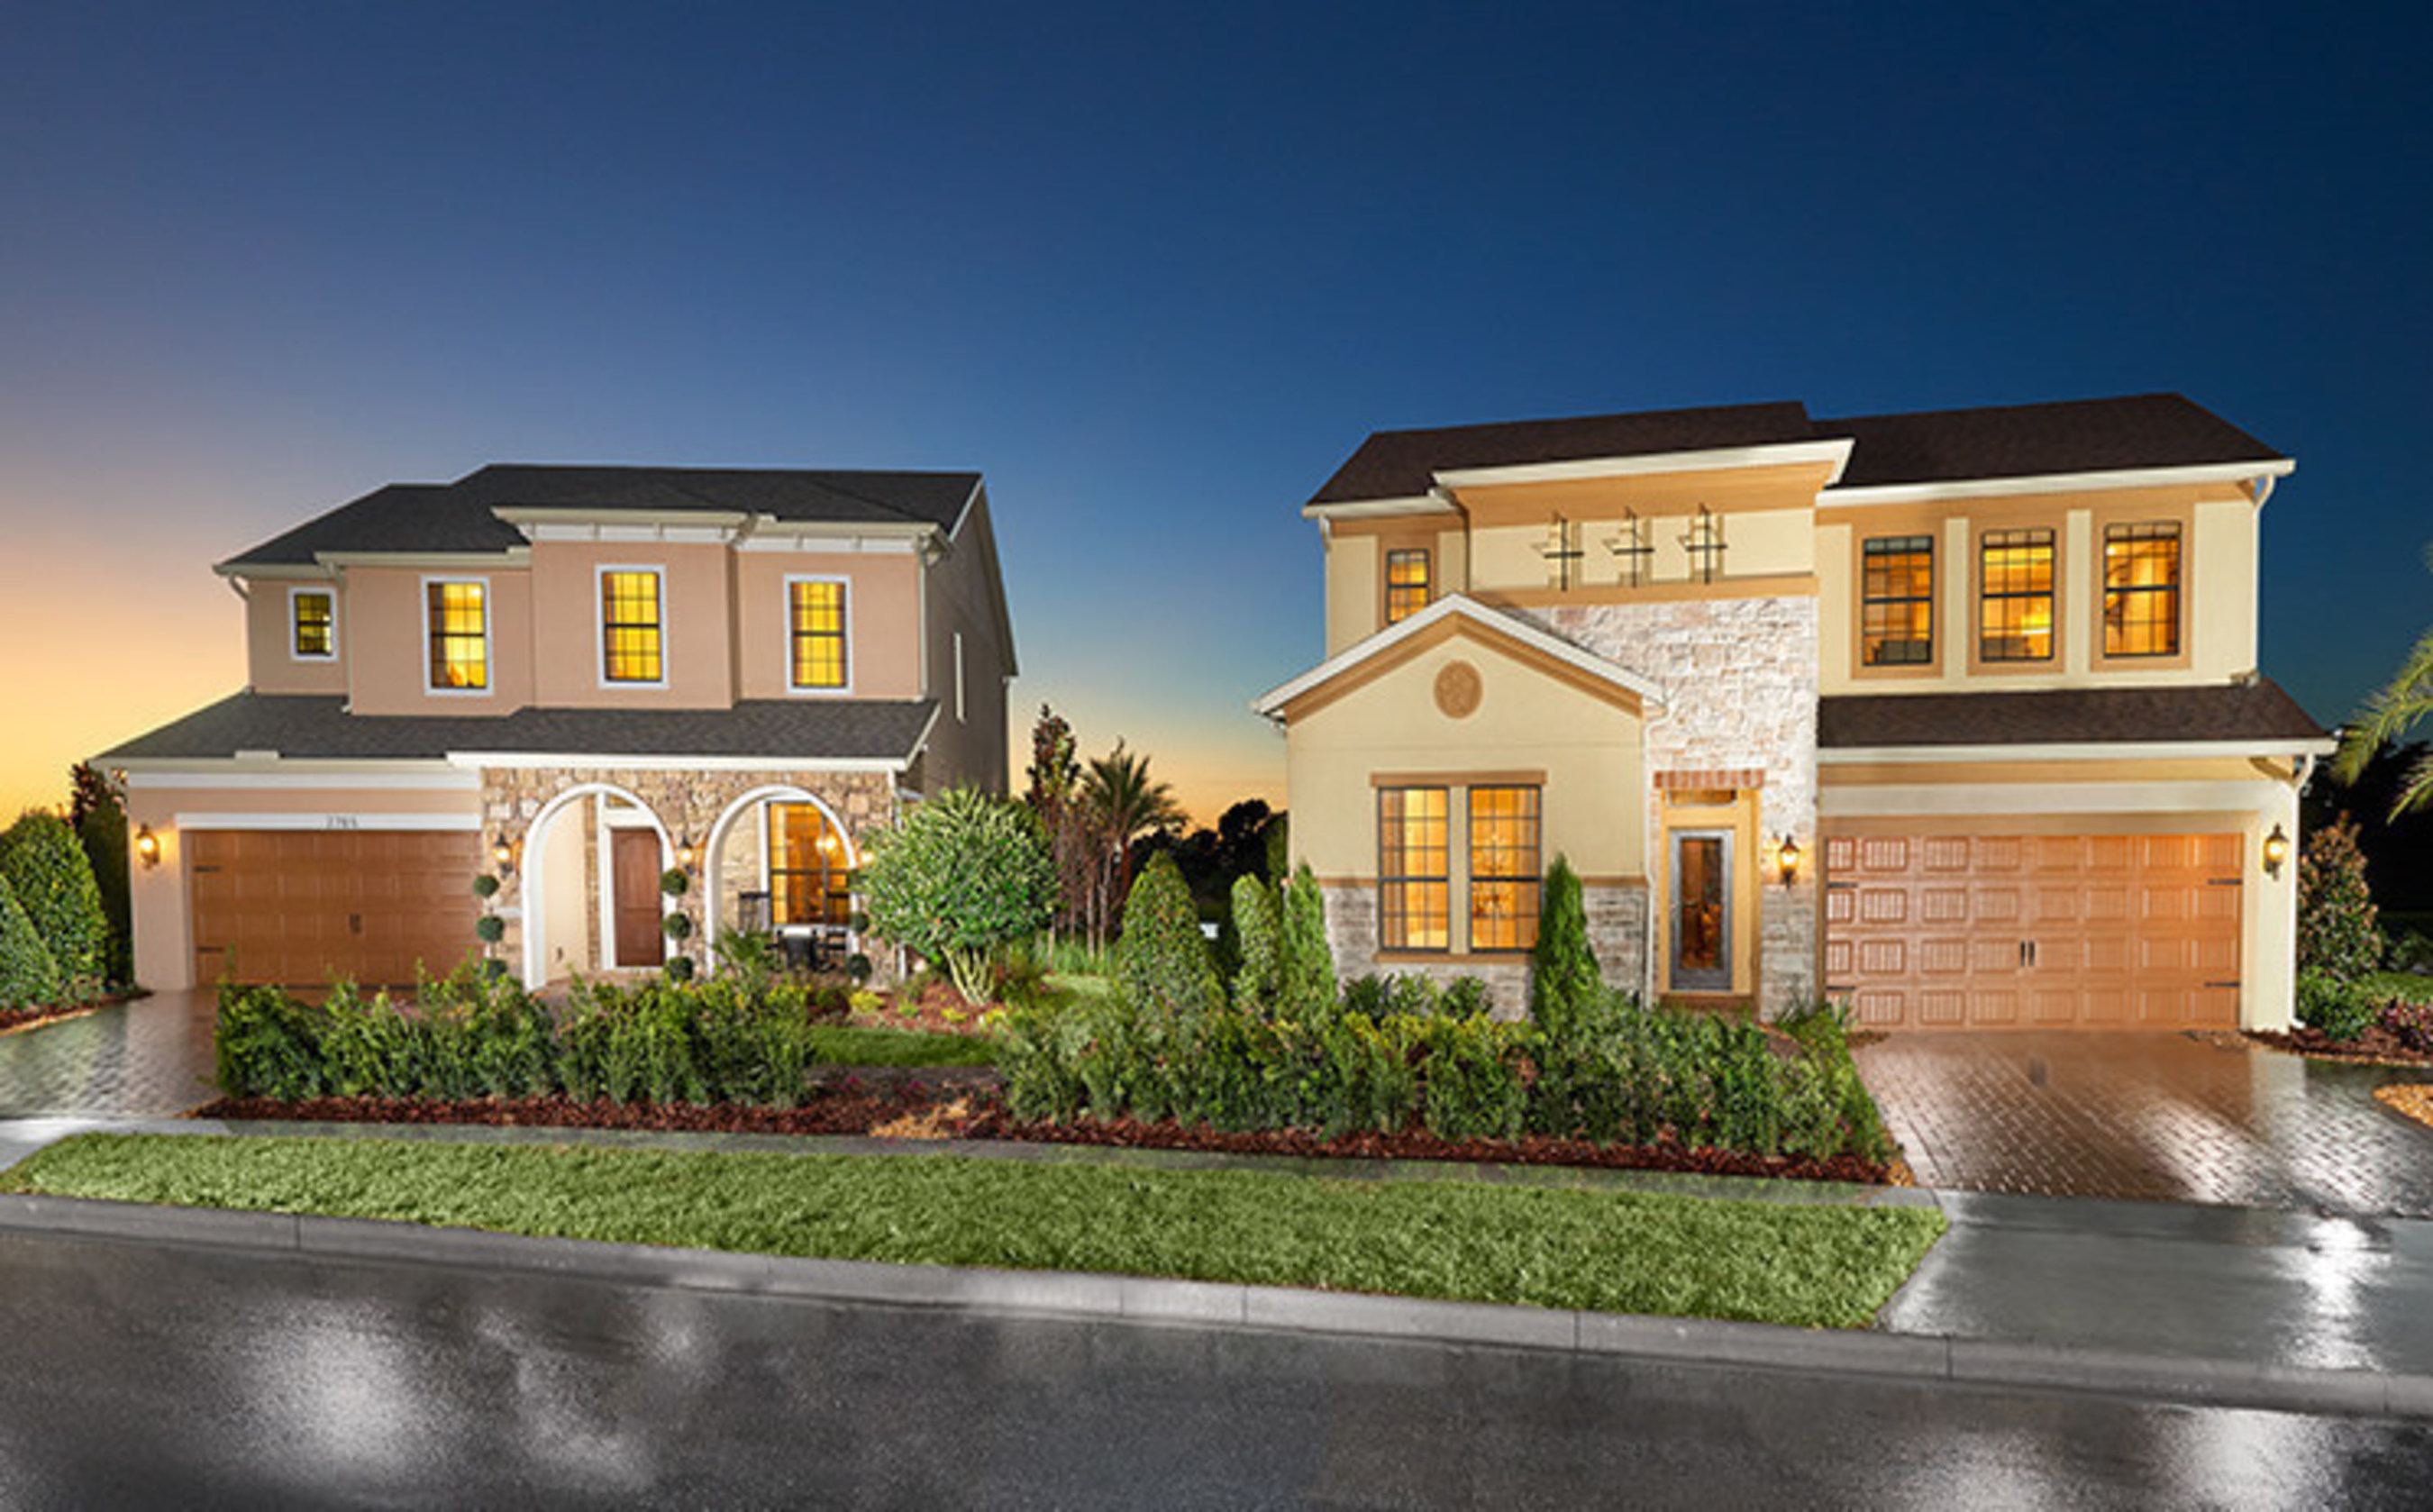 Standard Pacific Homes Debuts Five New Home Designs In Kissimmee's Master-Planned Community Of Eagle Lake